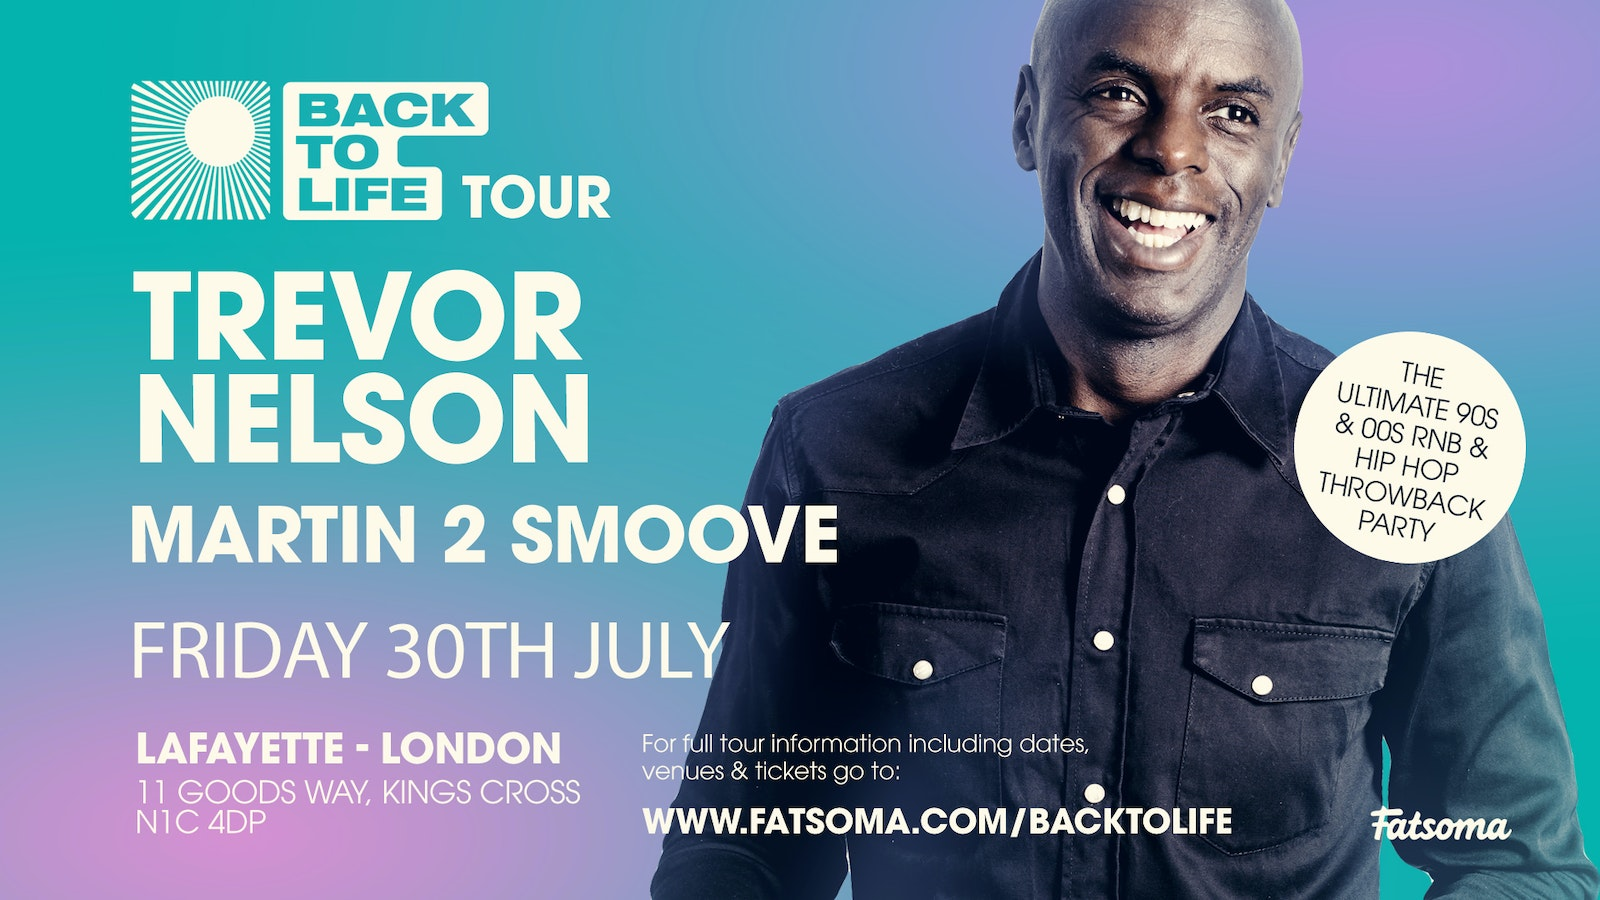 Trevor Nelson's END OF LOCKDOWN 90s & 00s RNB & Hip Hop Throwback Party!